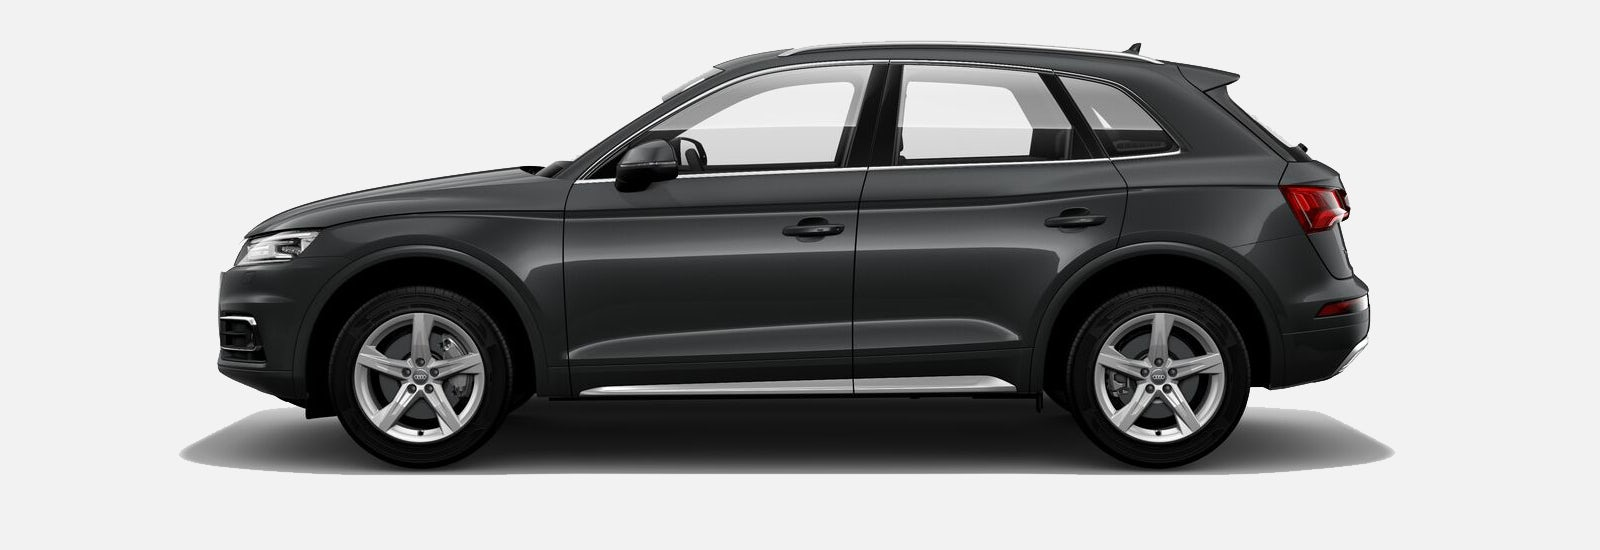 Audi Q Colours Guide And Prices Carwow - Audi of manhattan